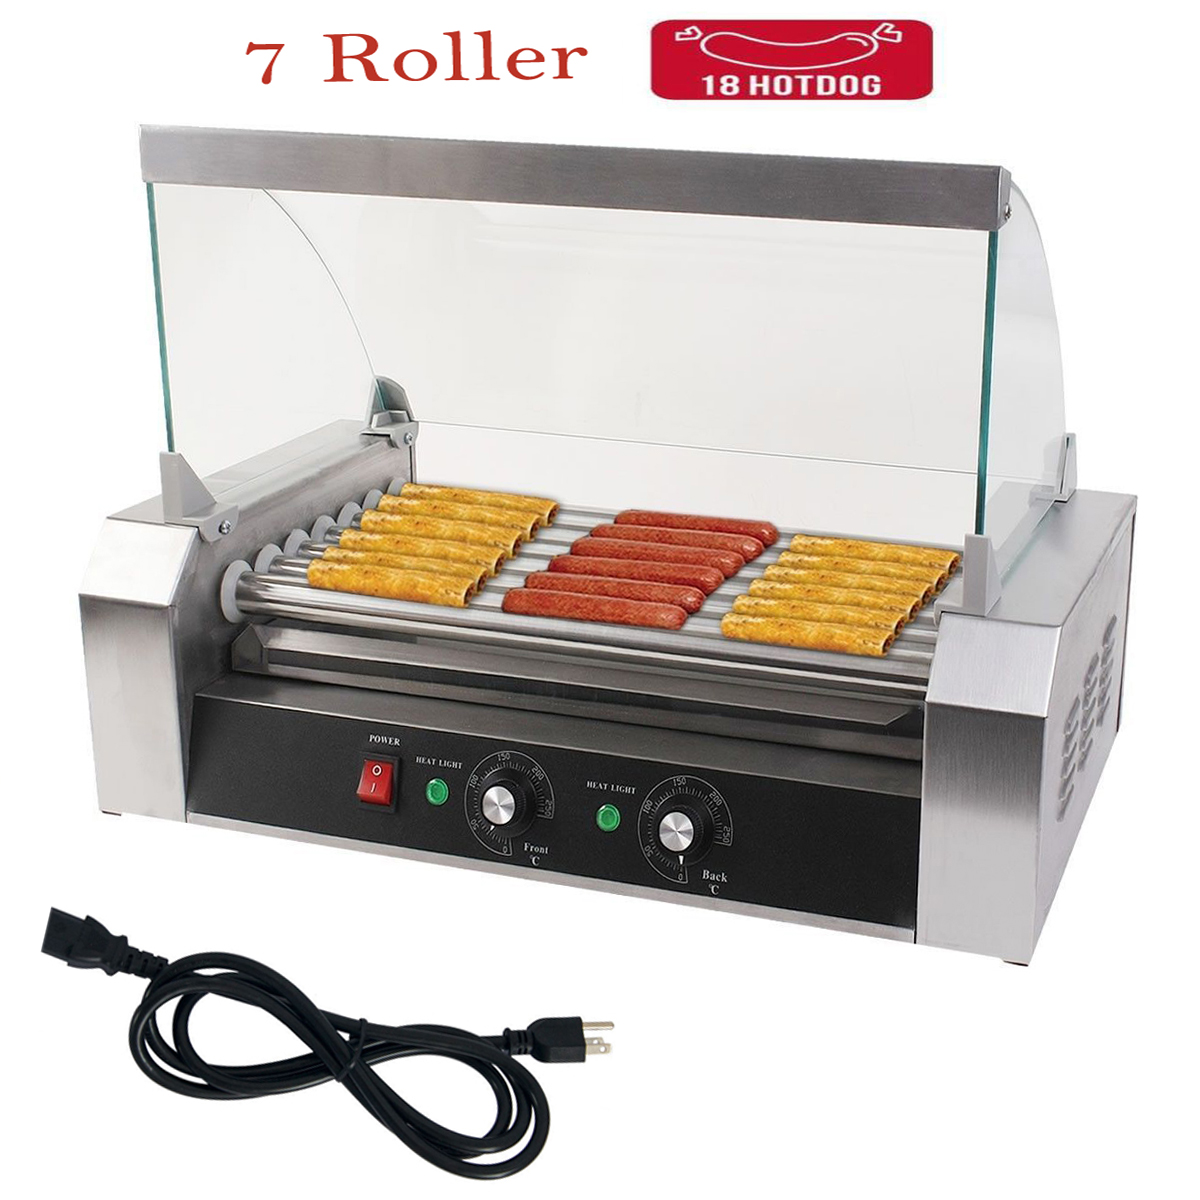 new quality commercial 18 hot dog 7 roller hotdog grill. Black Bedroom Furniture Sets. Home Design Ideas